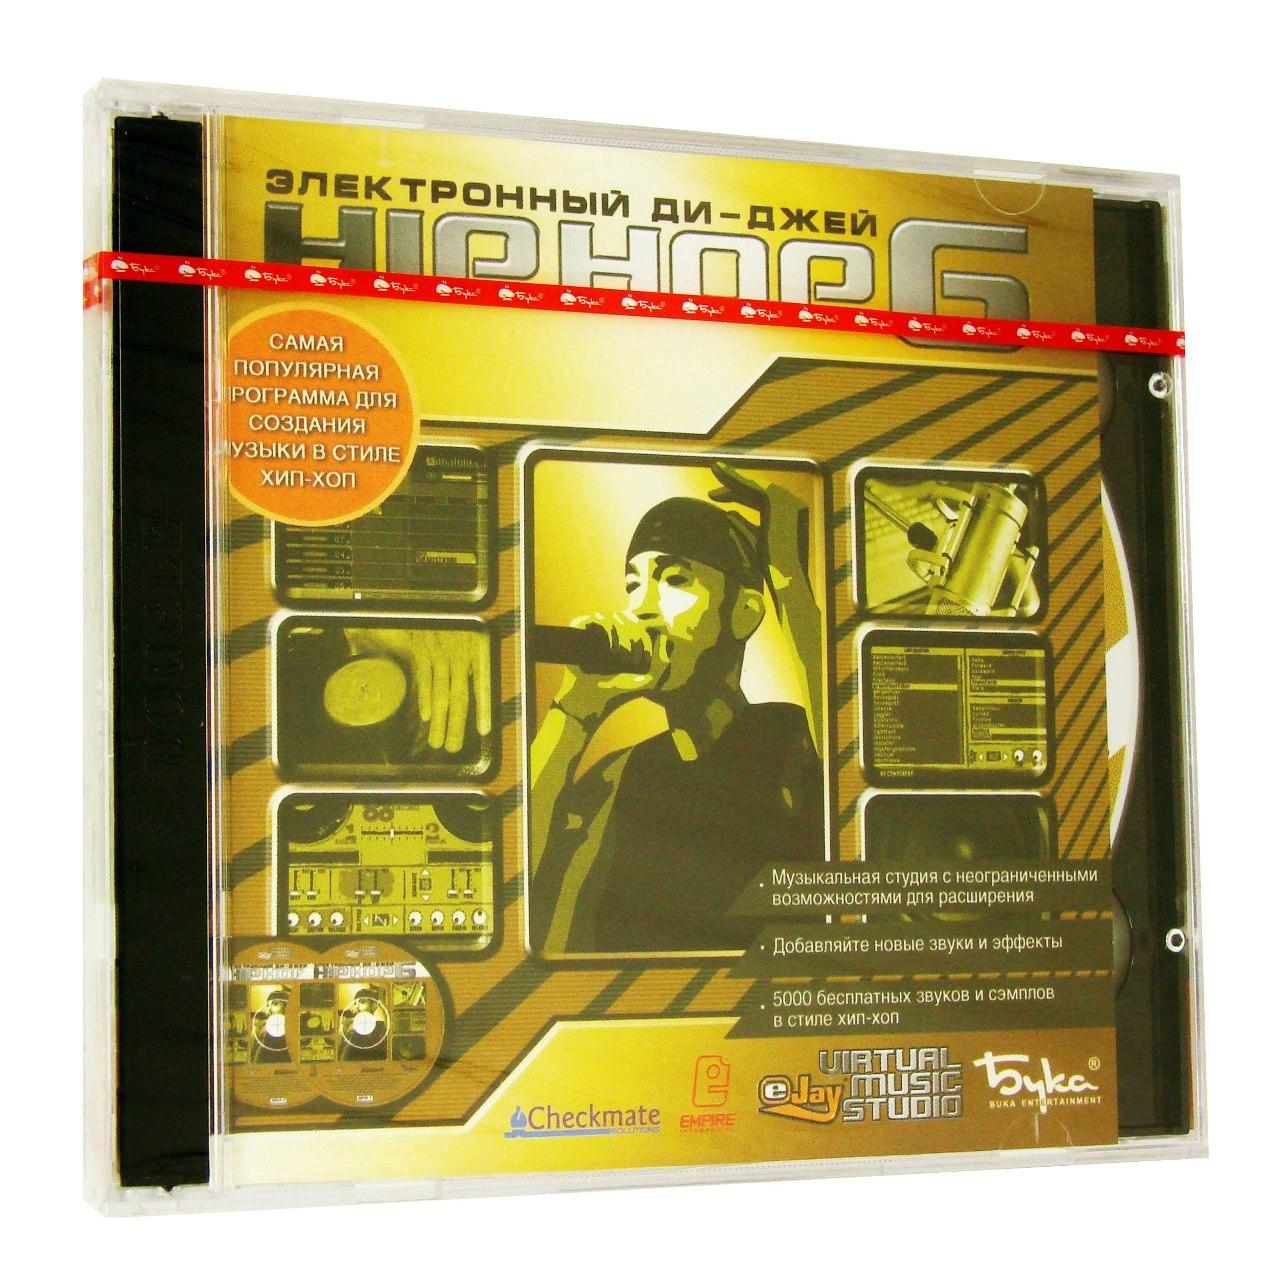 Электронный Ди Джей:HIP-HOP 6 (PC)